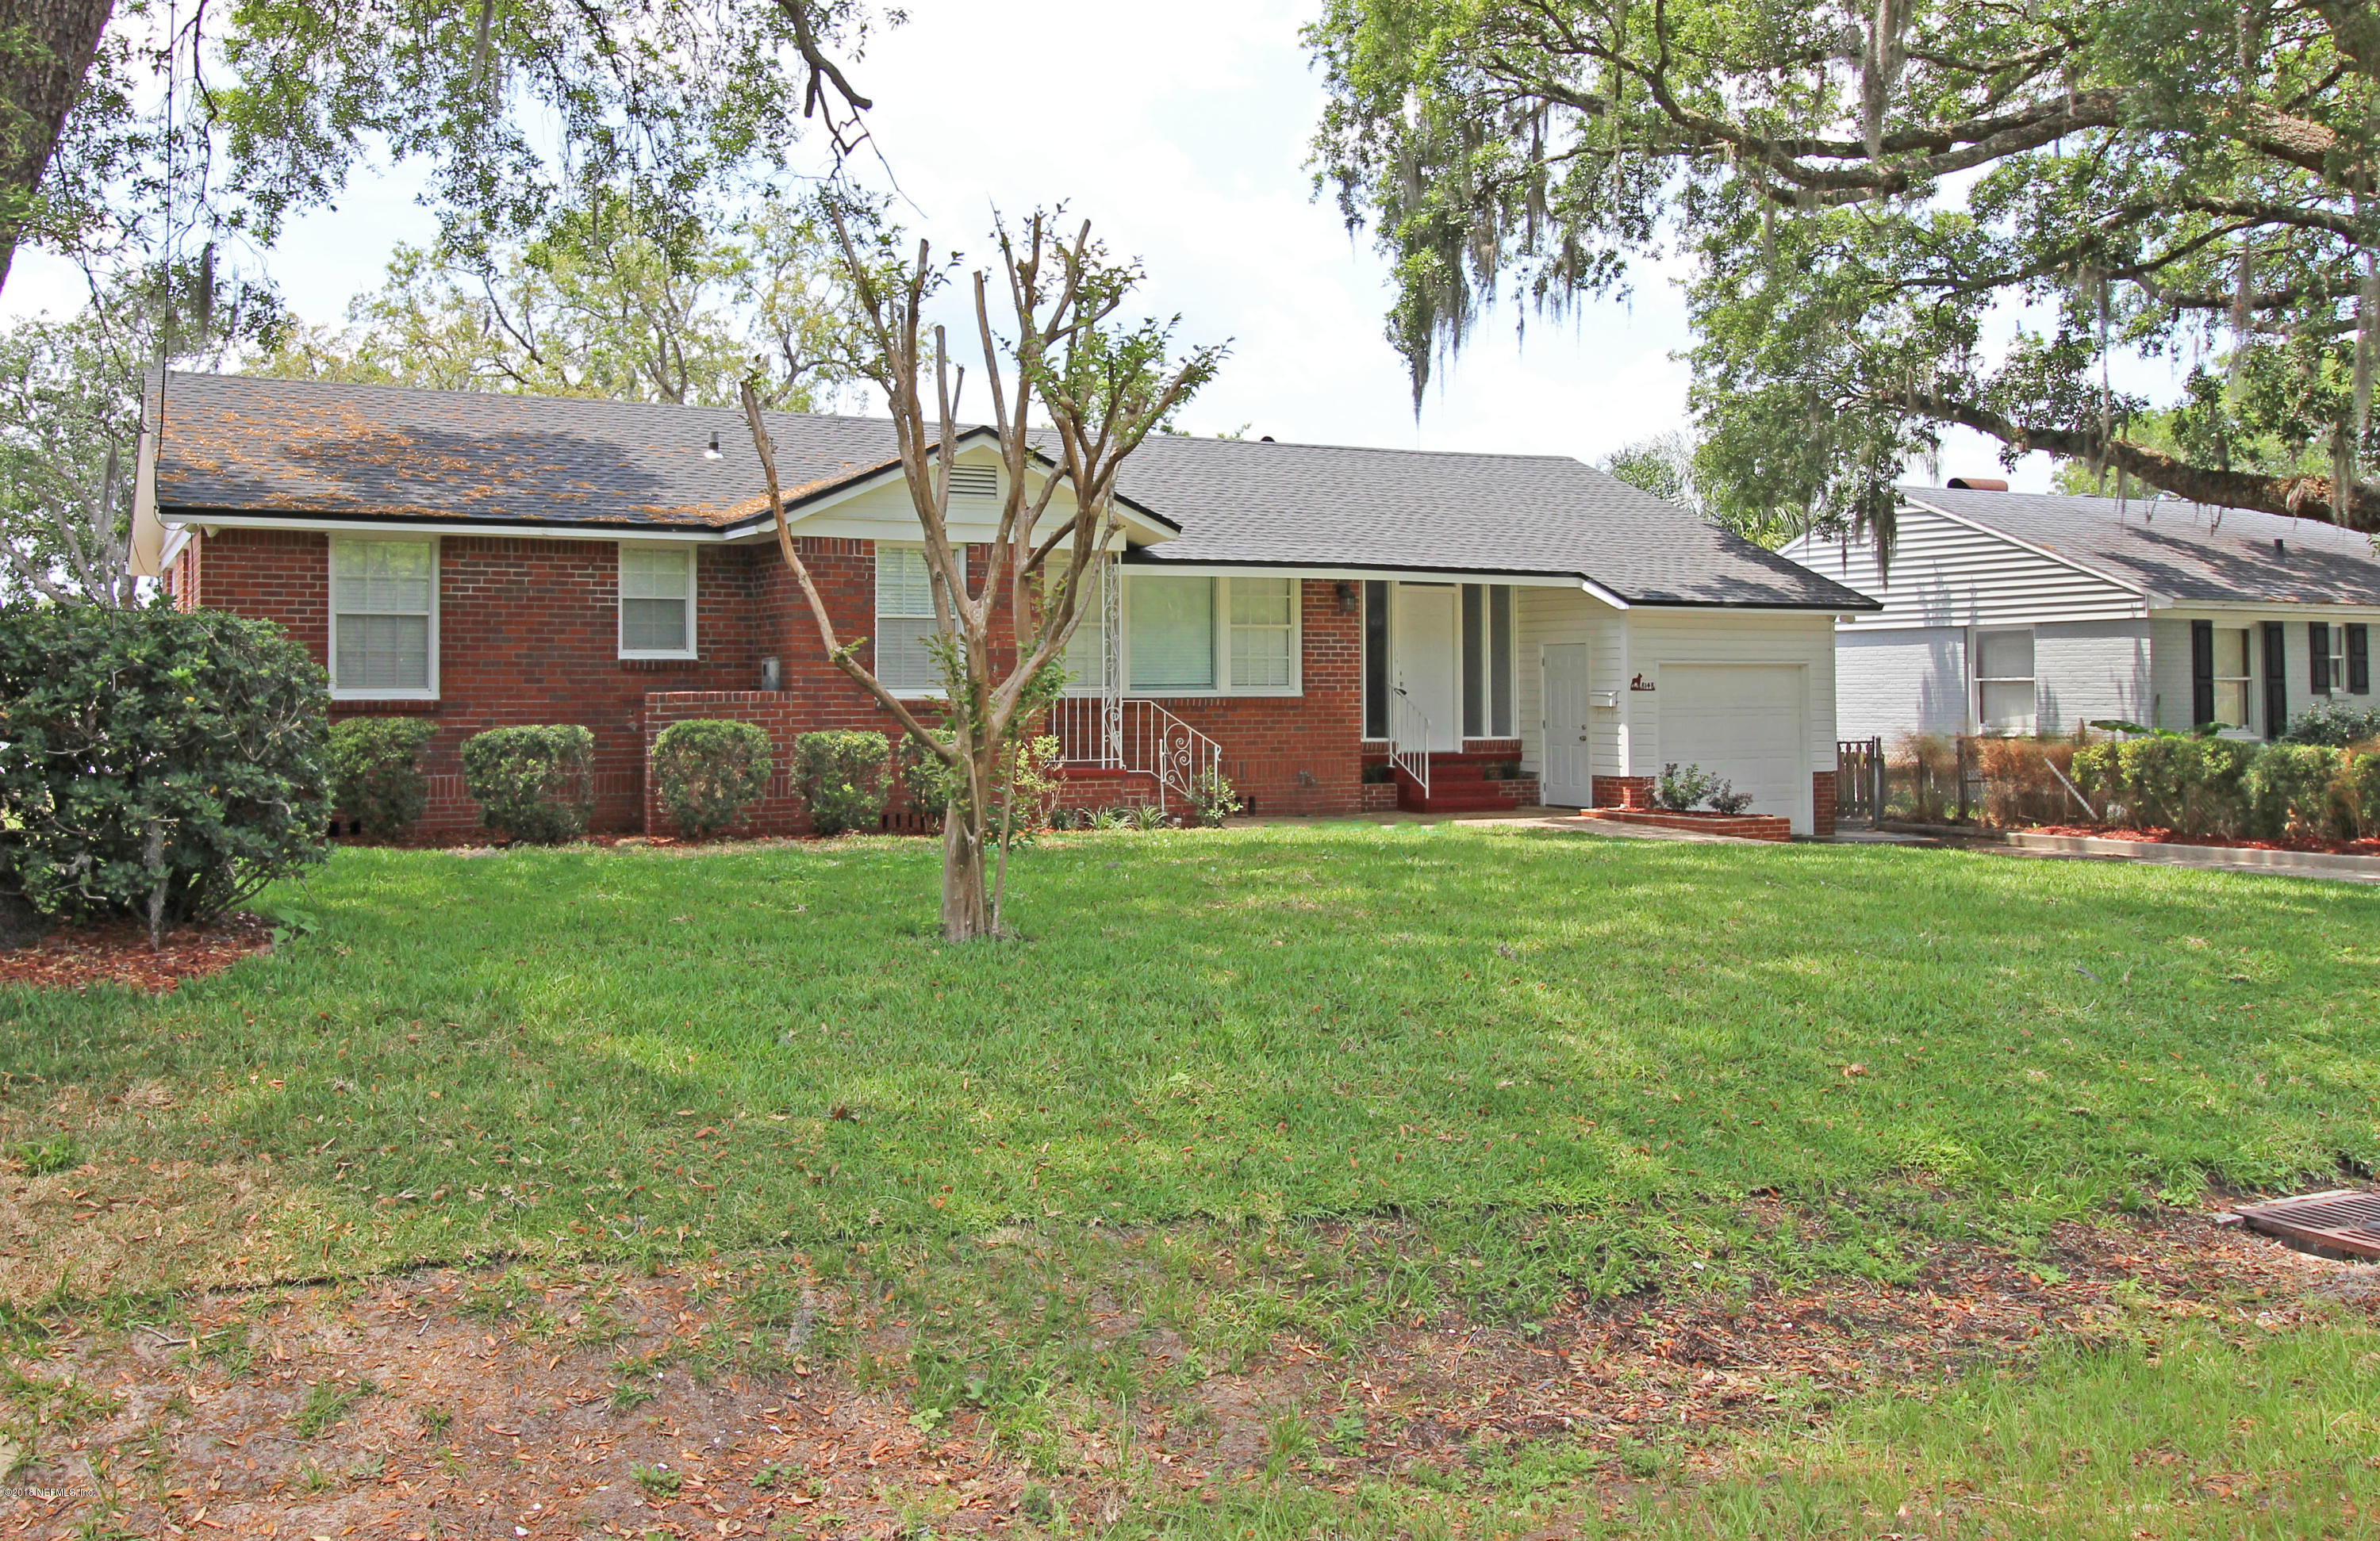 8148 CONCORD, JACKSONVILLE, FLORIDA 32208, 4 Bedrooms Bedrooms, ,3 BathroomsBathrooms,Residential - single family,For sale,CONCORD,936238